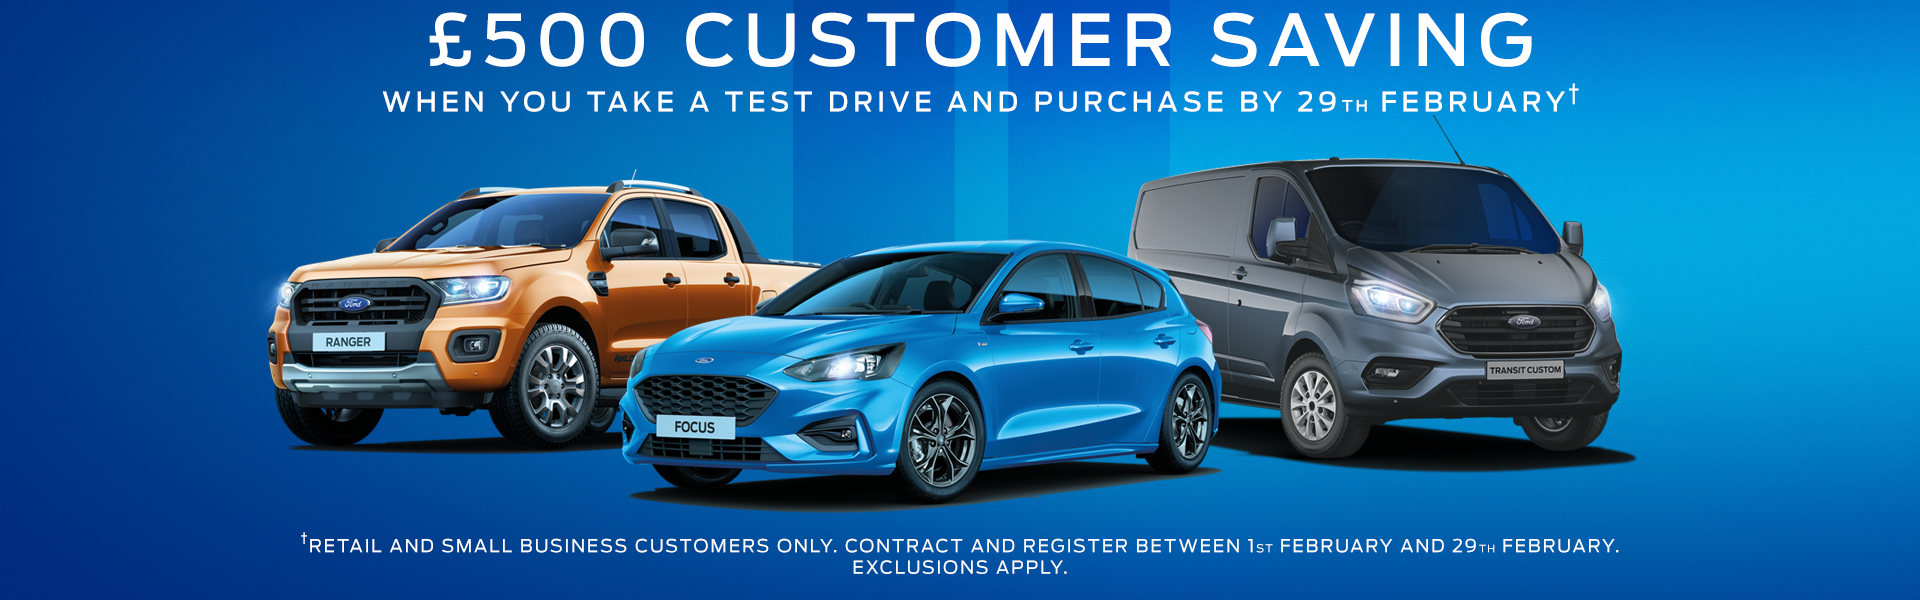 Q1-February-Test-Drive-Event-£500savings